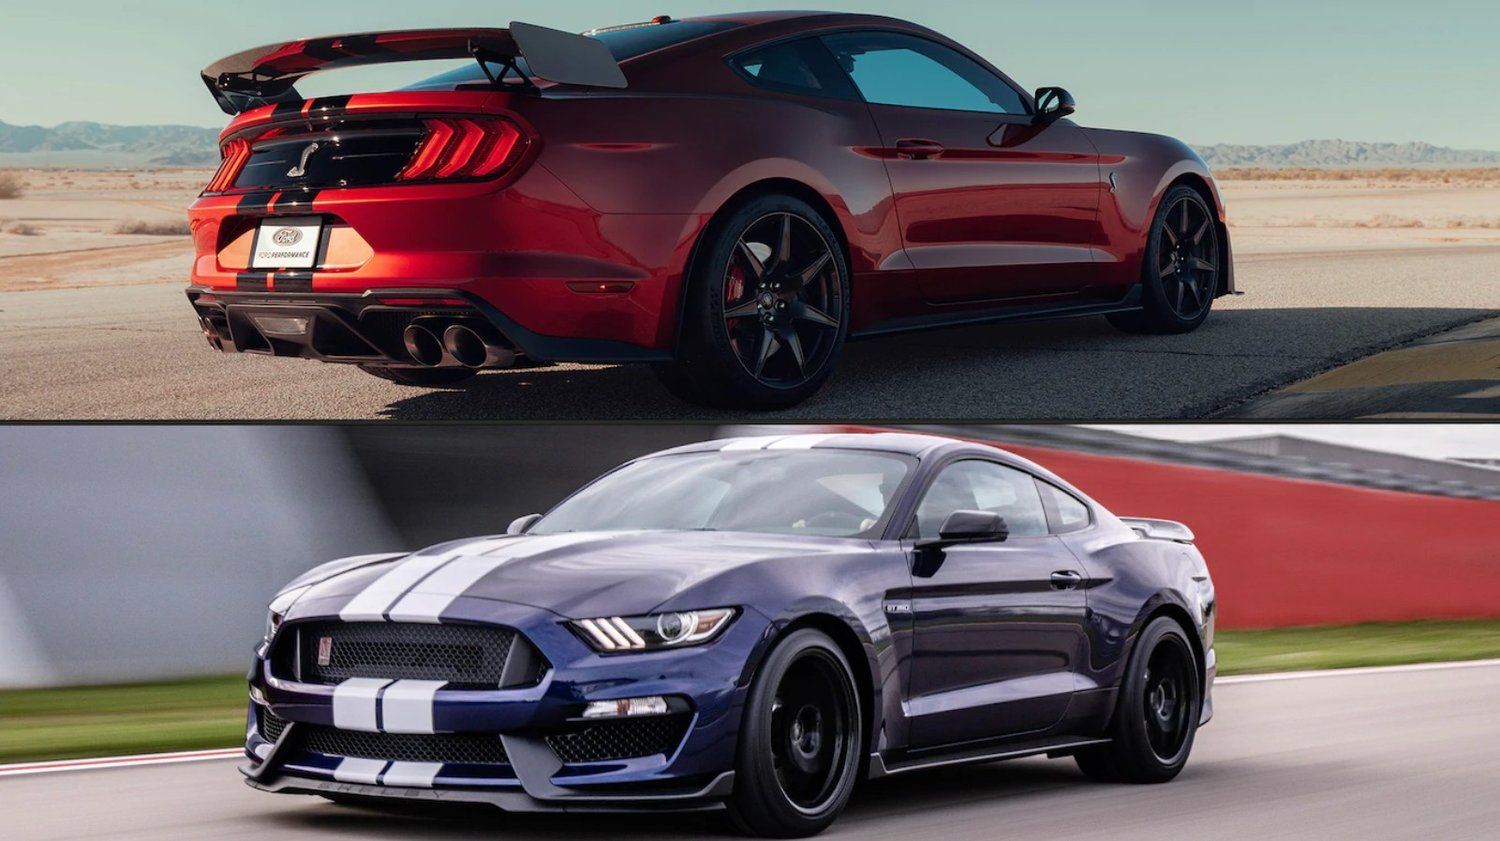 2020 Ford Mustang Shelby Gt500 Vs Gt350 How They Re Different